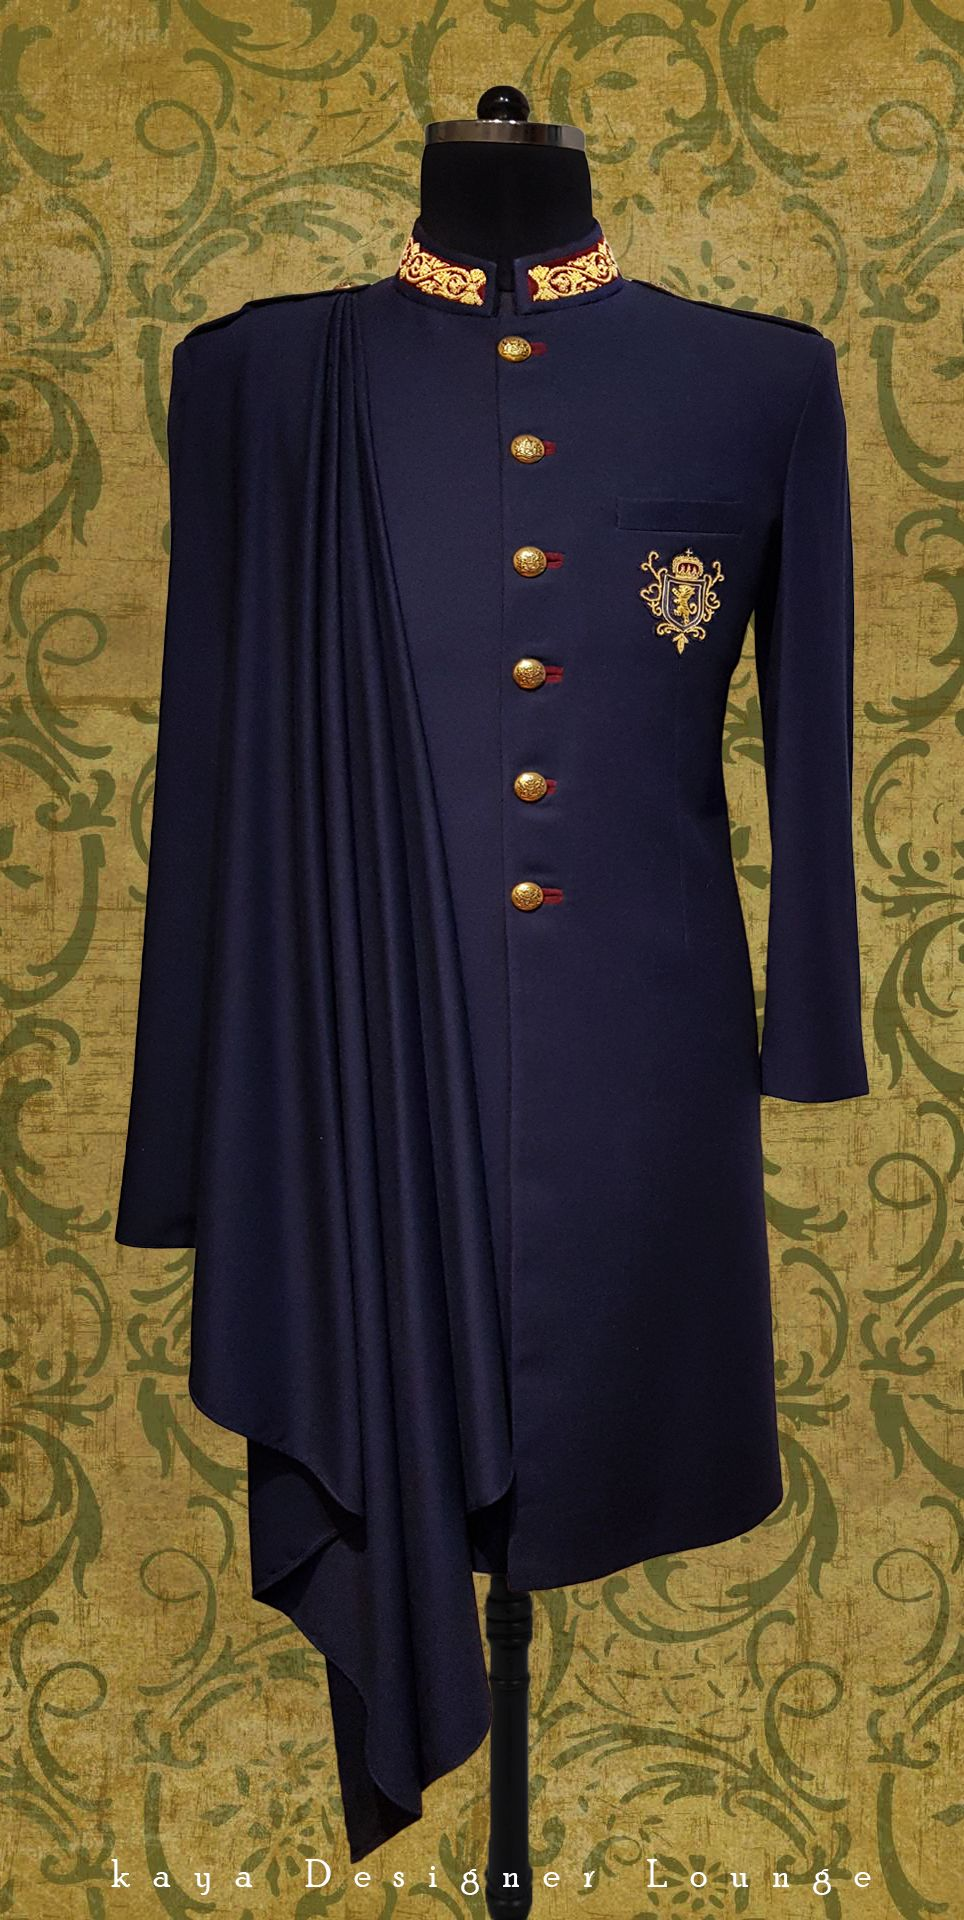 3bc2c1413a What are the best Indian wedding dresses for grooms ... - Quora